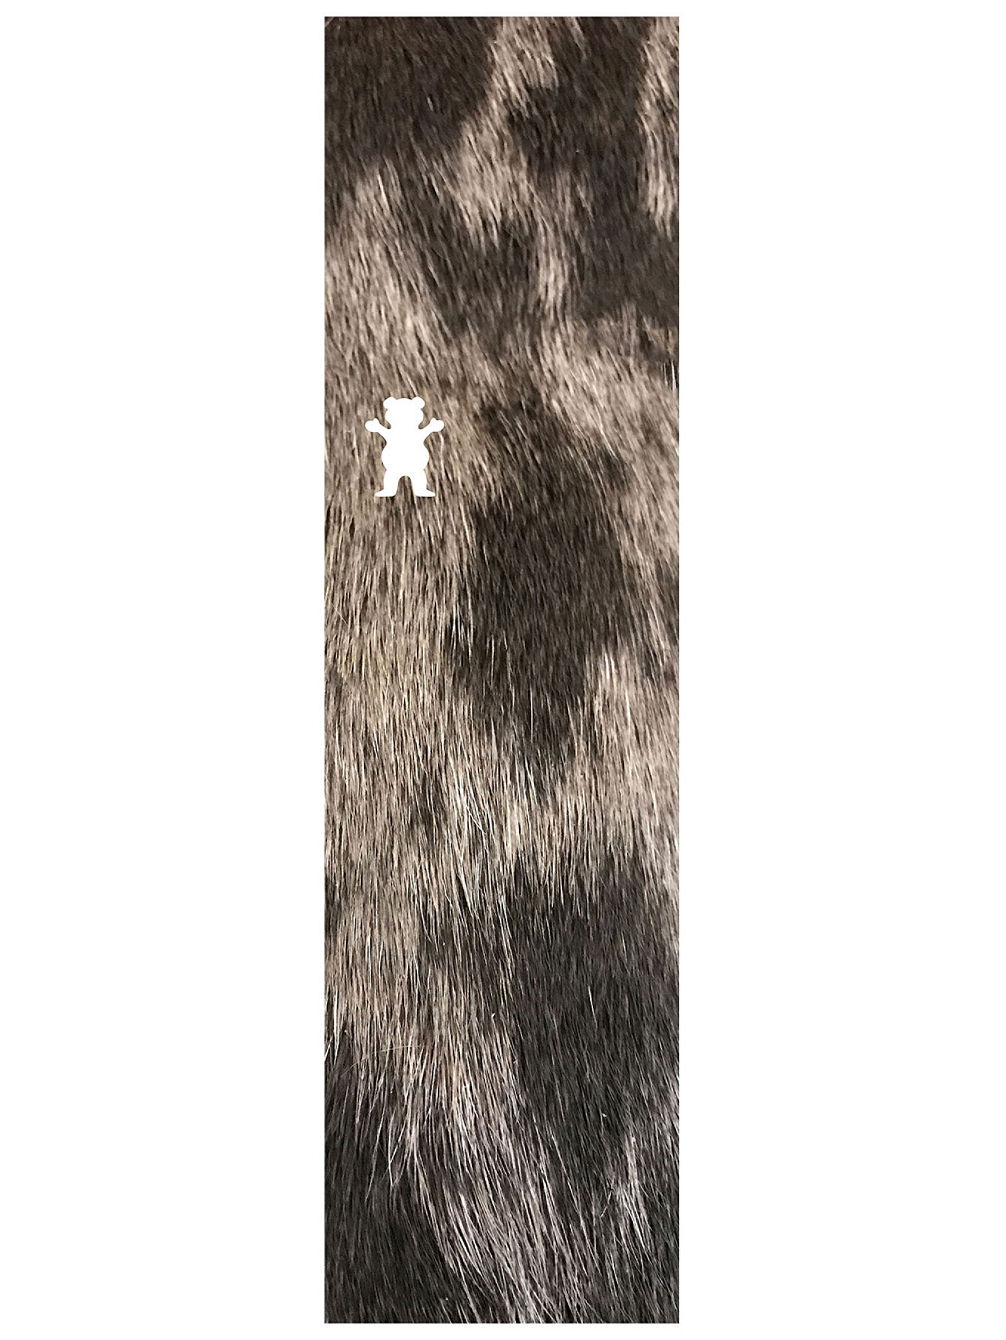 Boo Johnson Smokey Fur Grip Tape